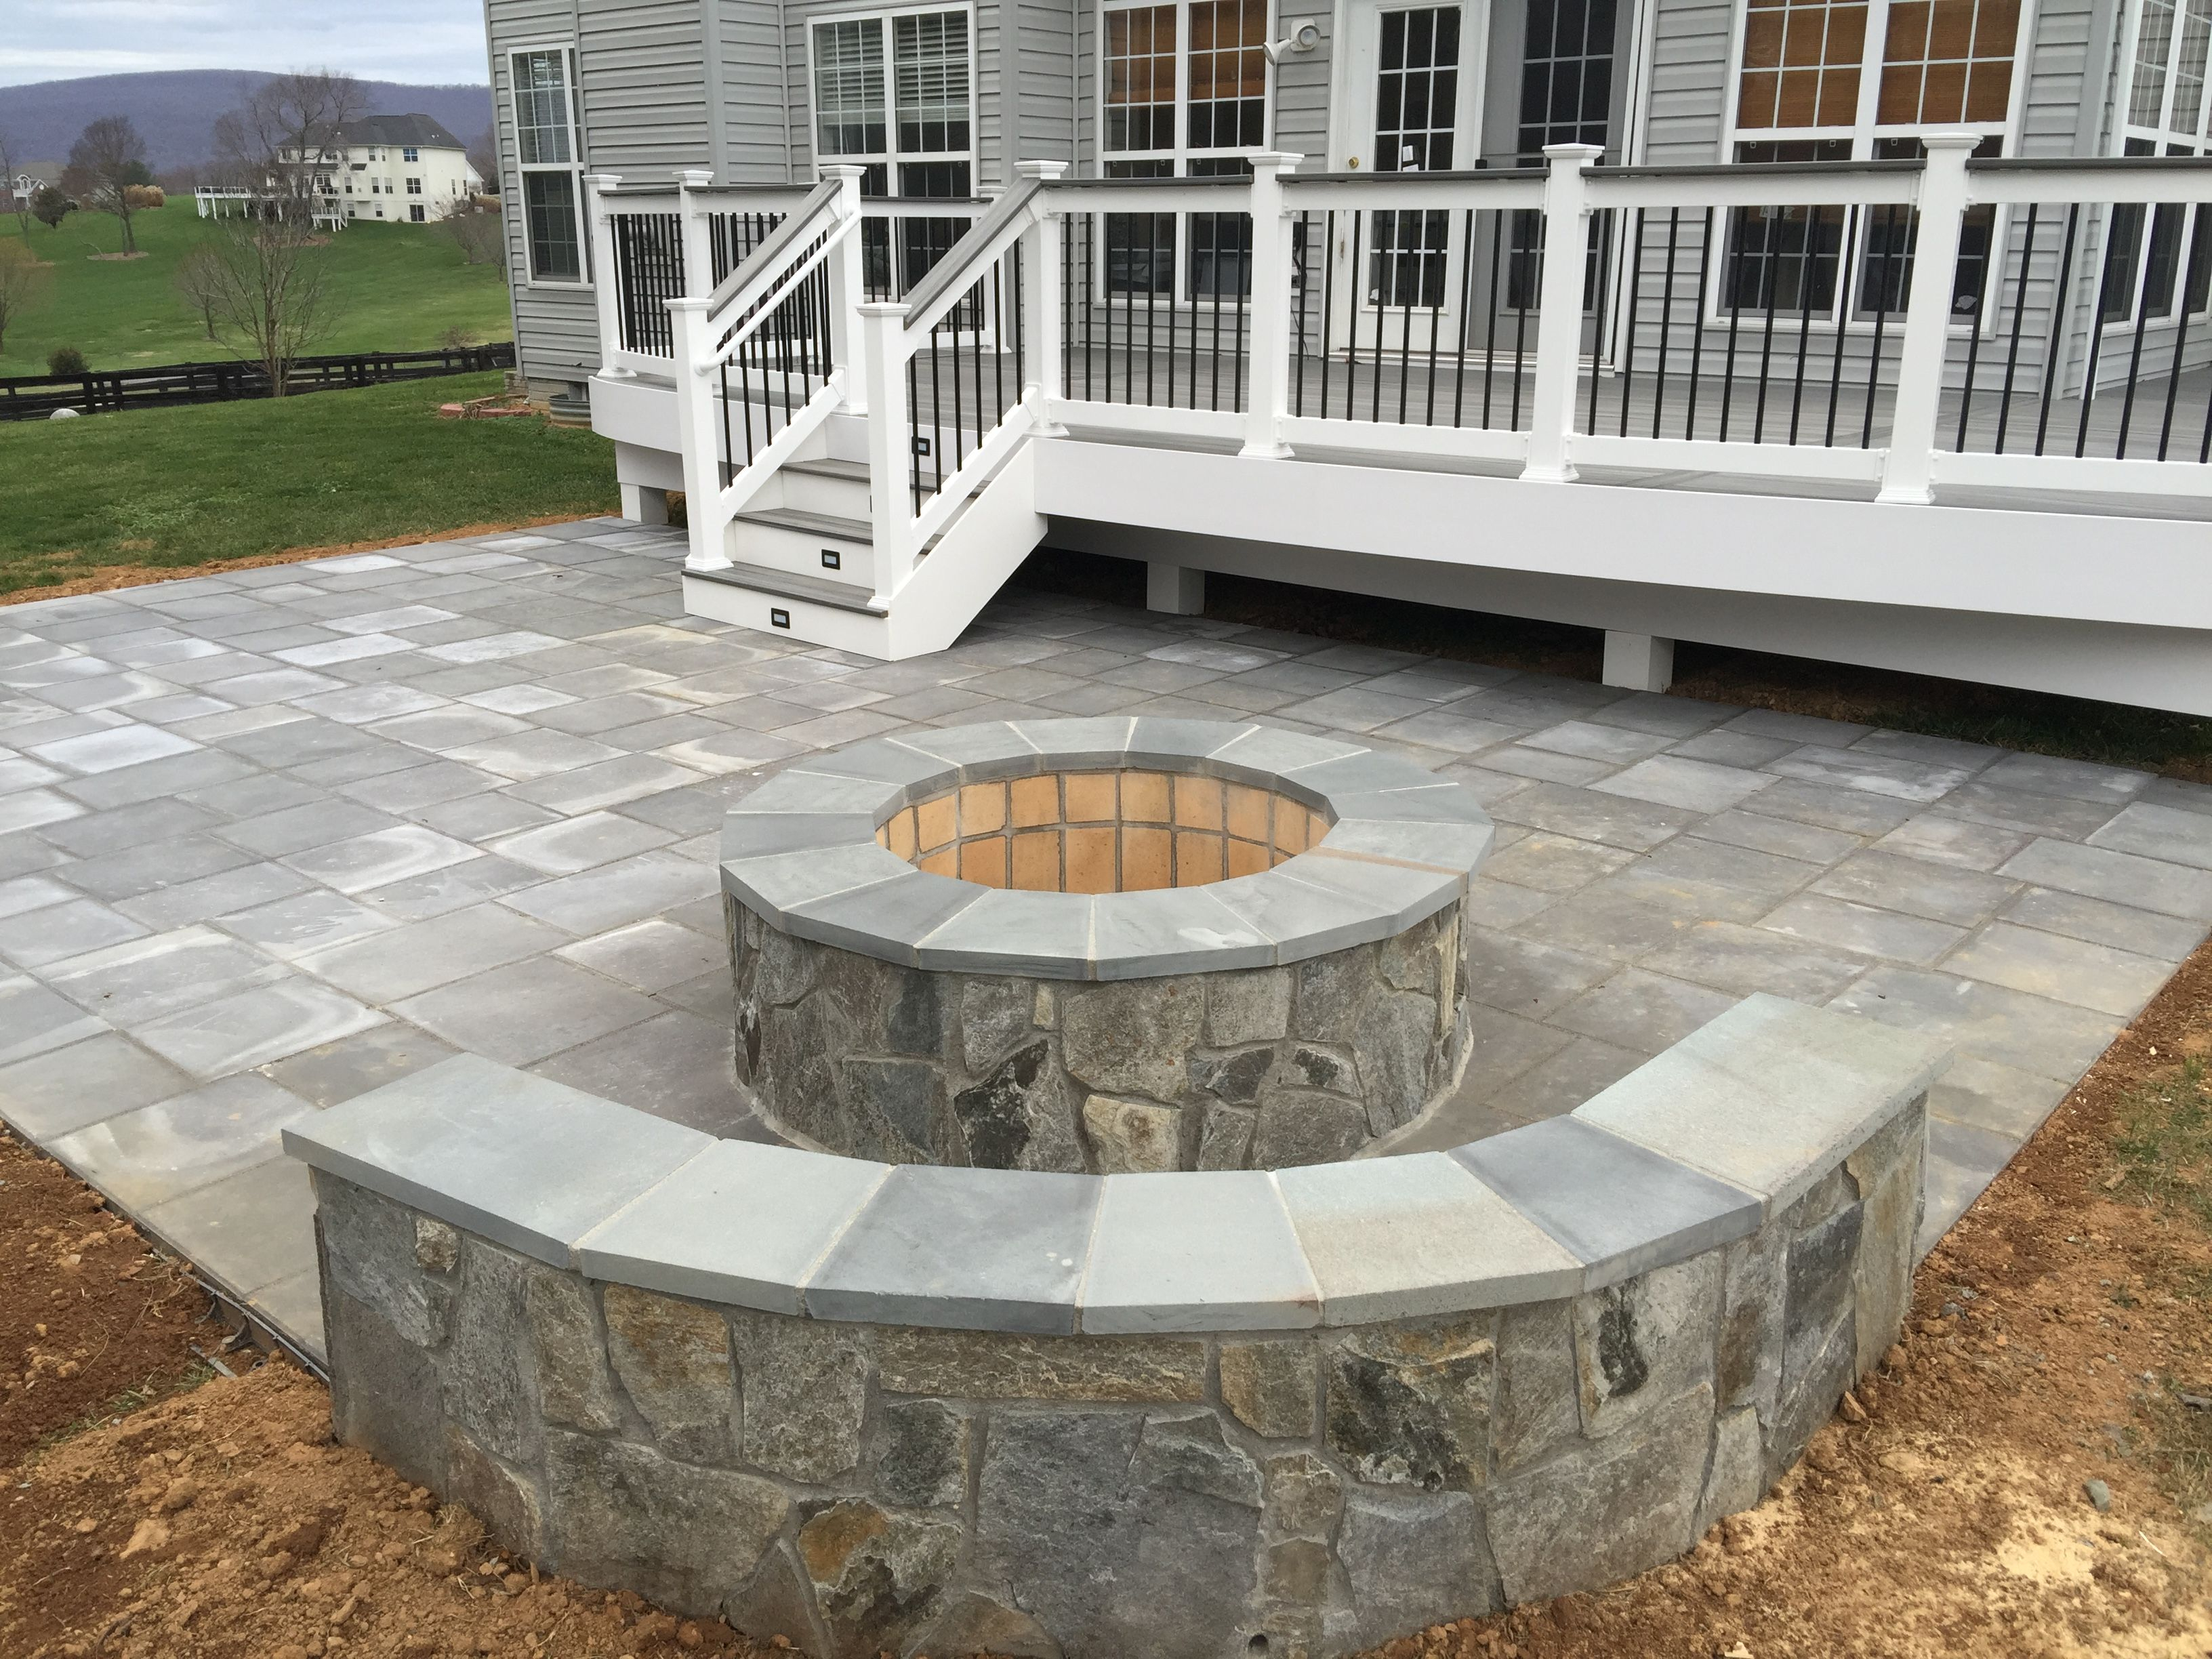 A Beautiful Paver Patio With Stone Seating Walls And A Fire throughout Backyard Stone Ideas